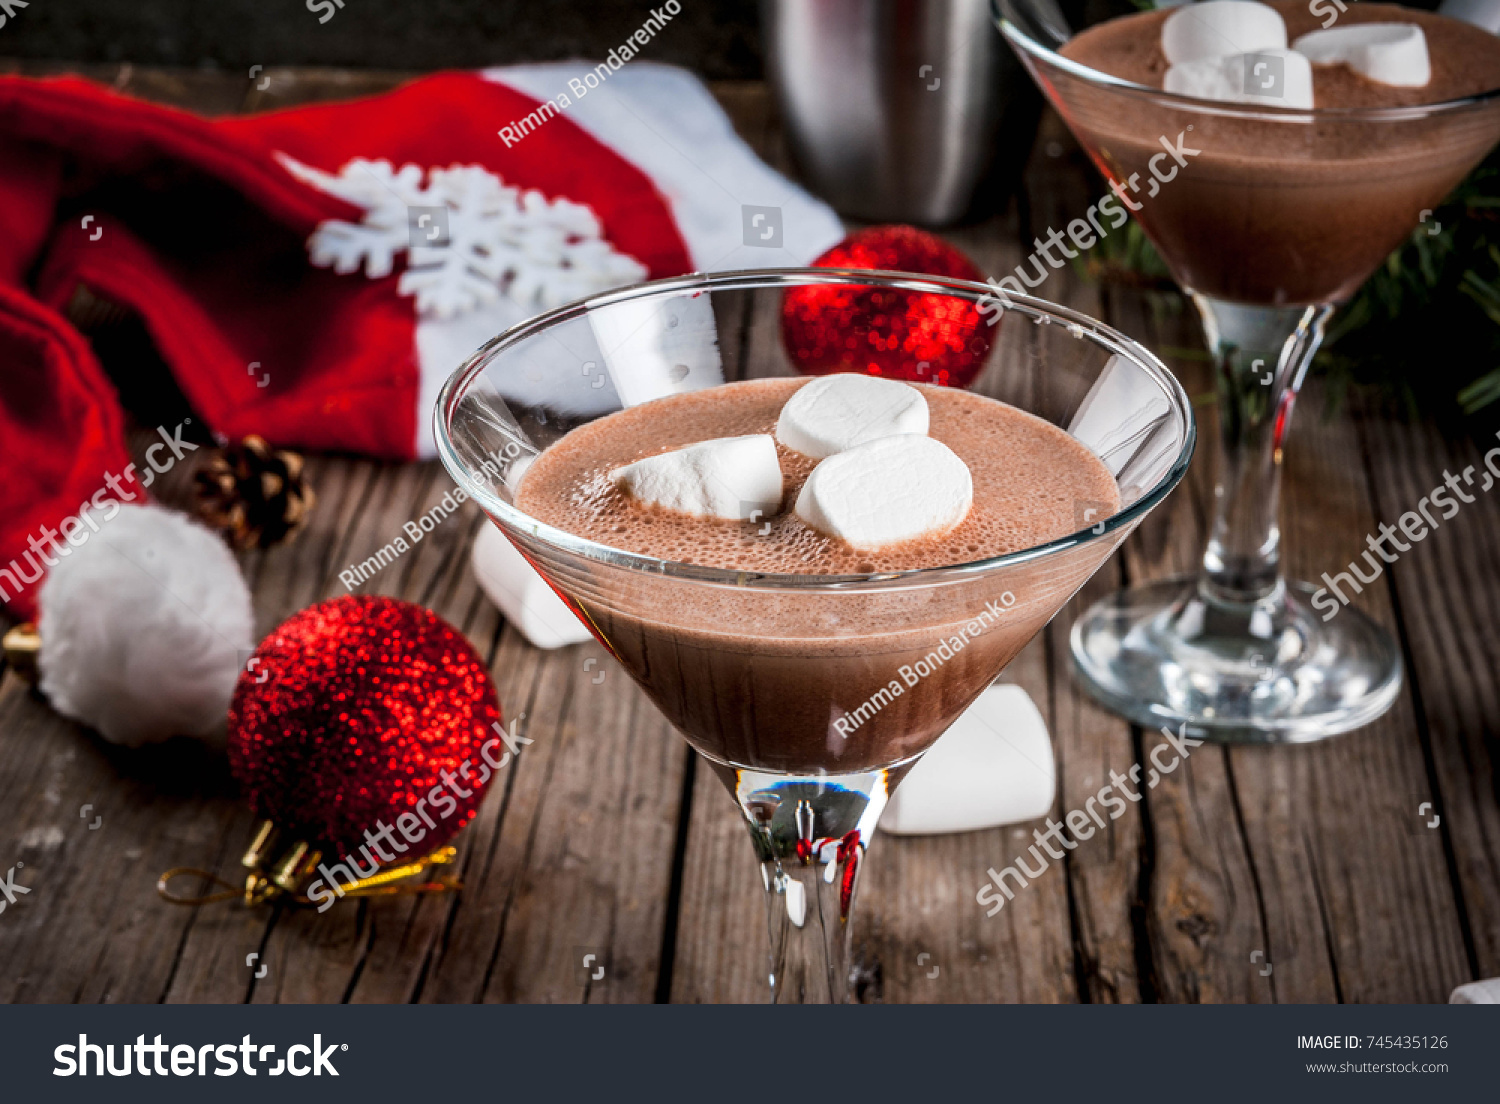 Christmas Party Drink Ideas Part - 43: Ideas For Christmas Party Drinks, Homemade Hot Chocolate Martini Cocktails  With Marshmallow, On Old